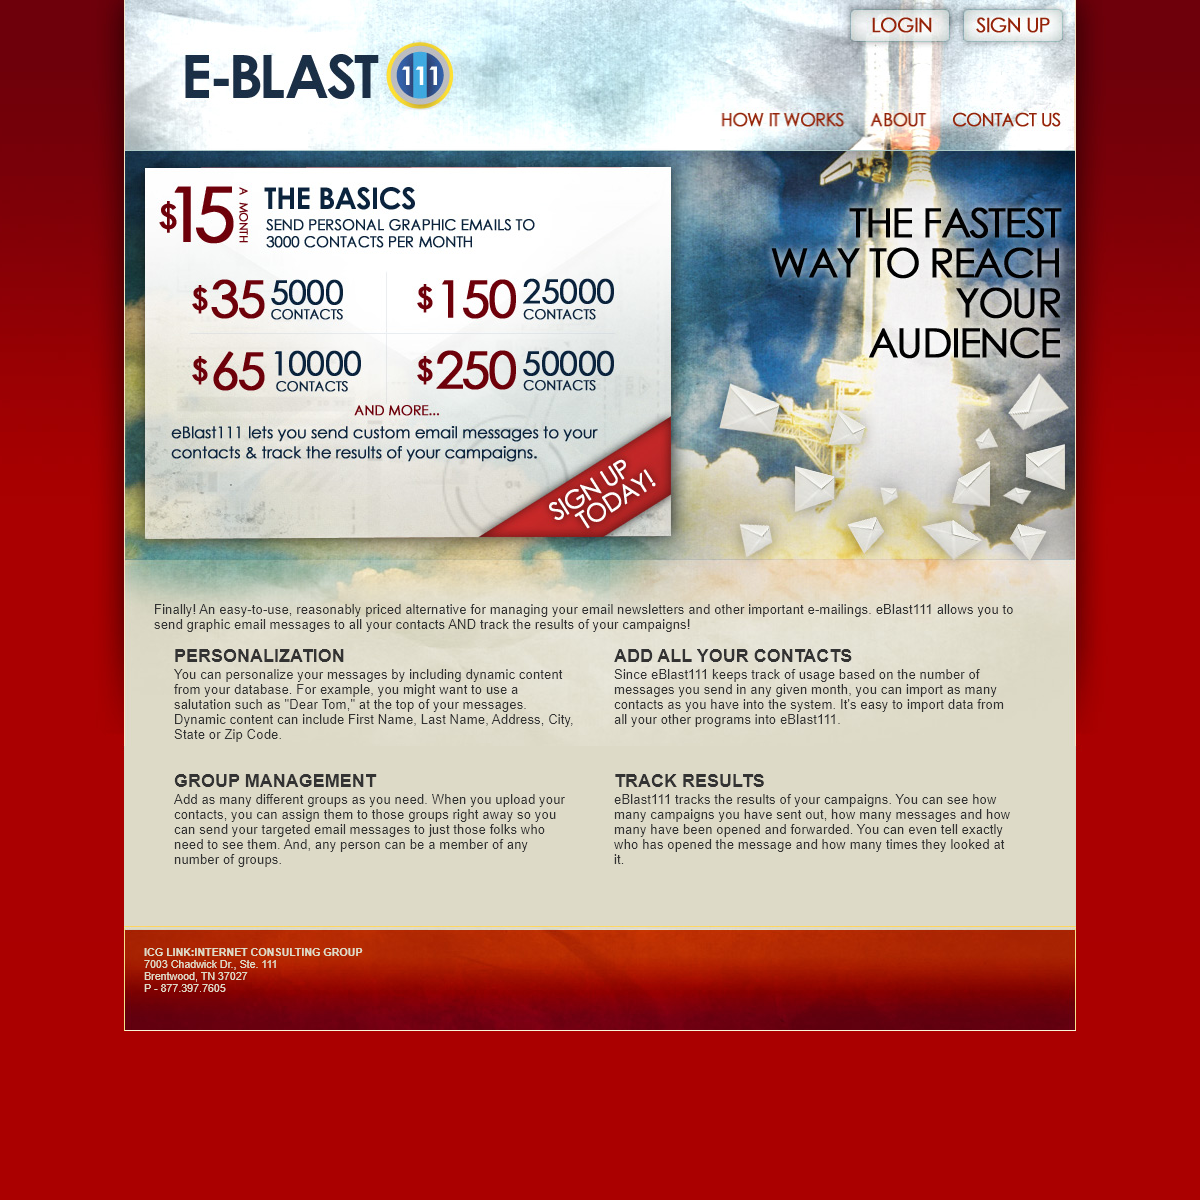 Eblast111 - The Fastest way to reach your audience through email marketing